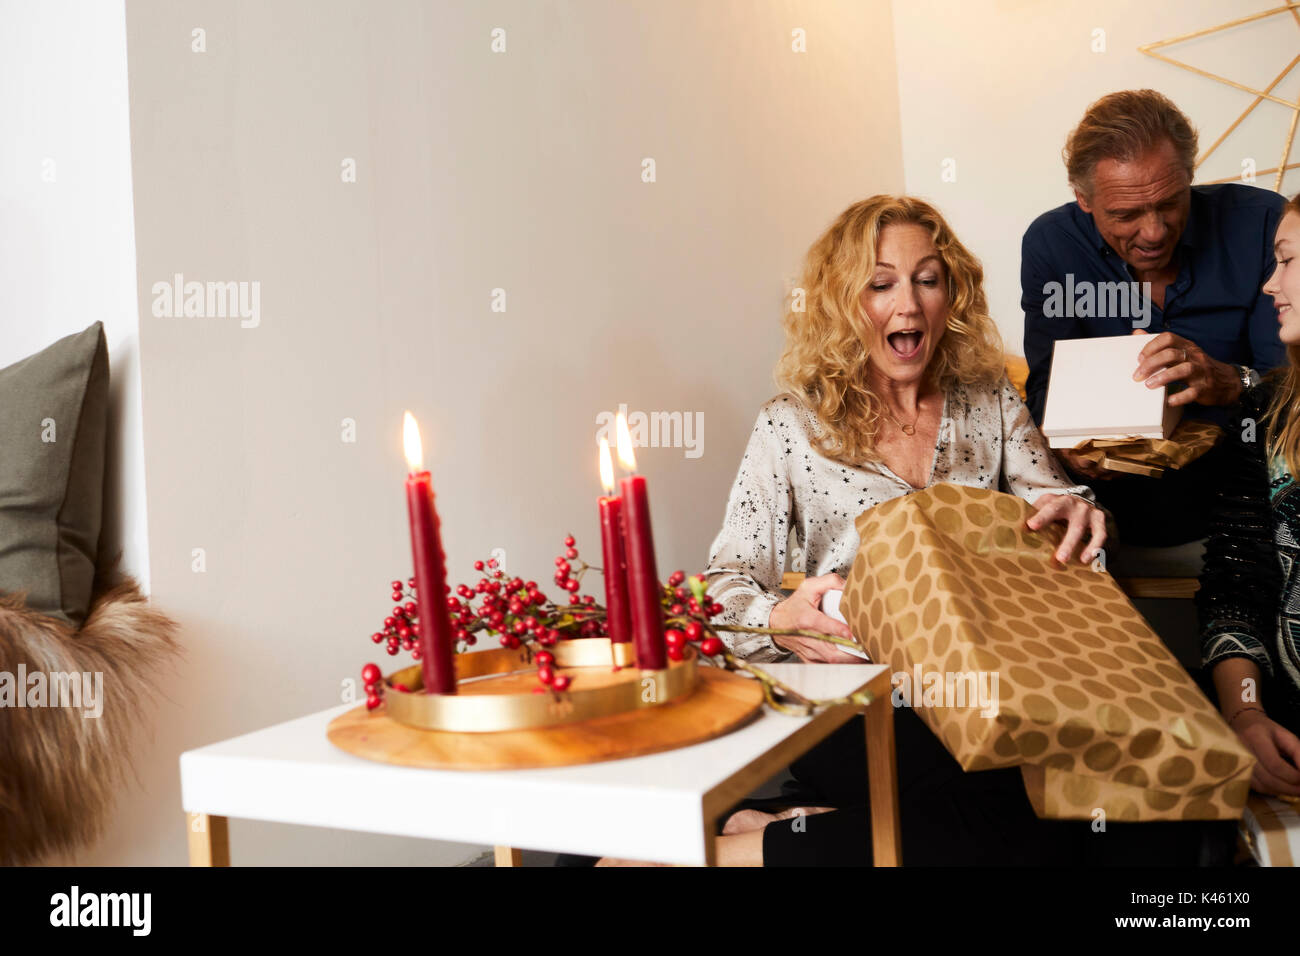 Family at Christmas Eve, unpacking presents, mother surprised, - Stock Image